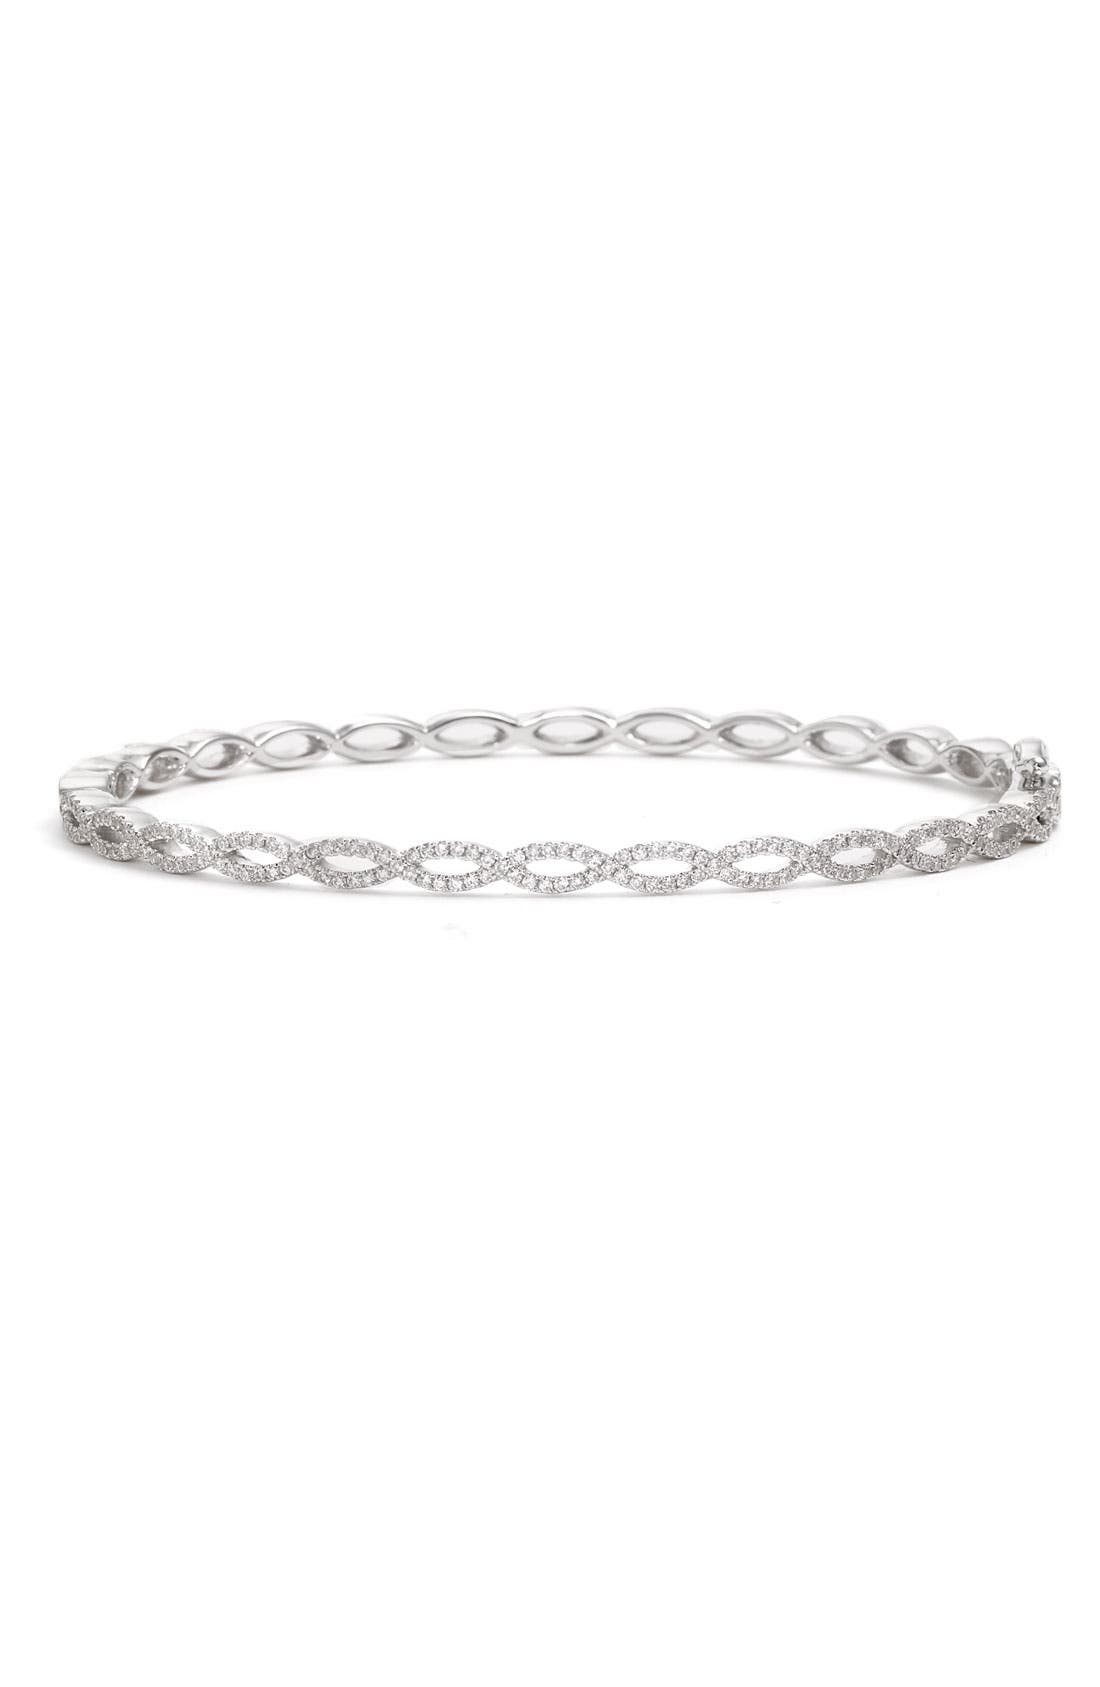 Alternate Image 1 Selected - Bony Levy Stackable Diamond Twist Bangle (Nordstrom Exclusive)